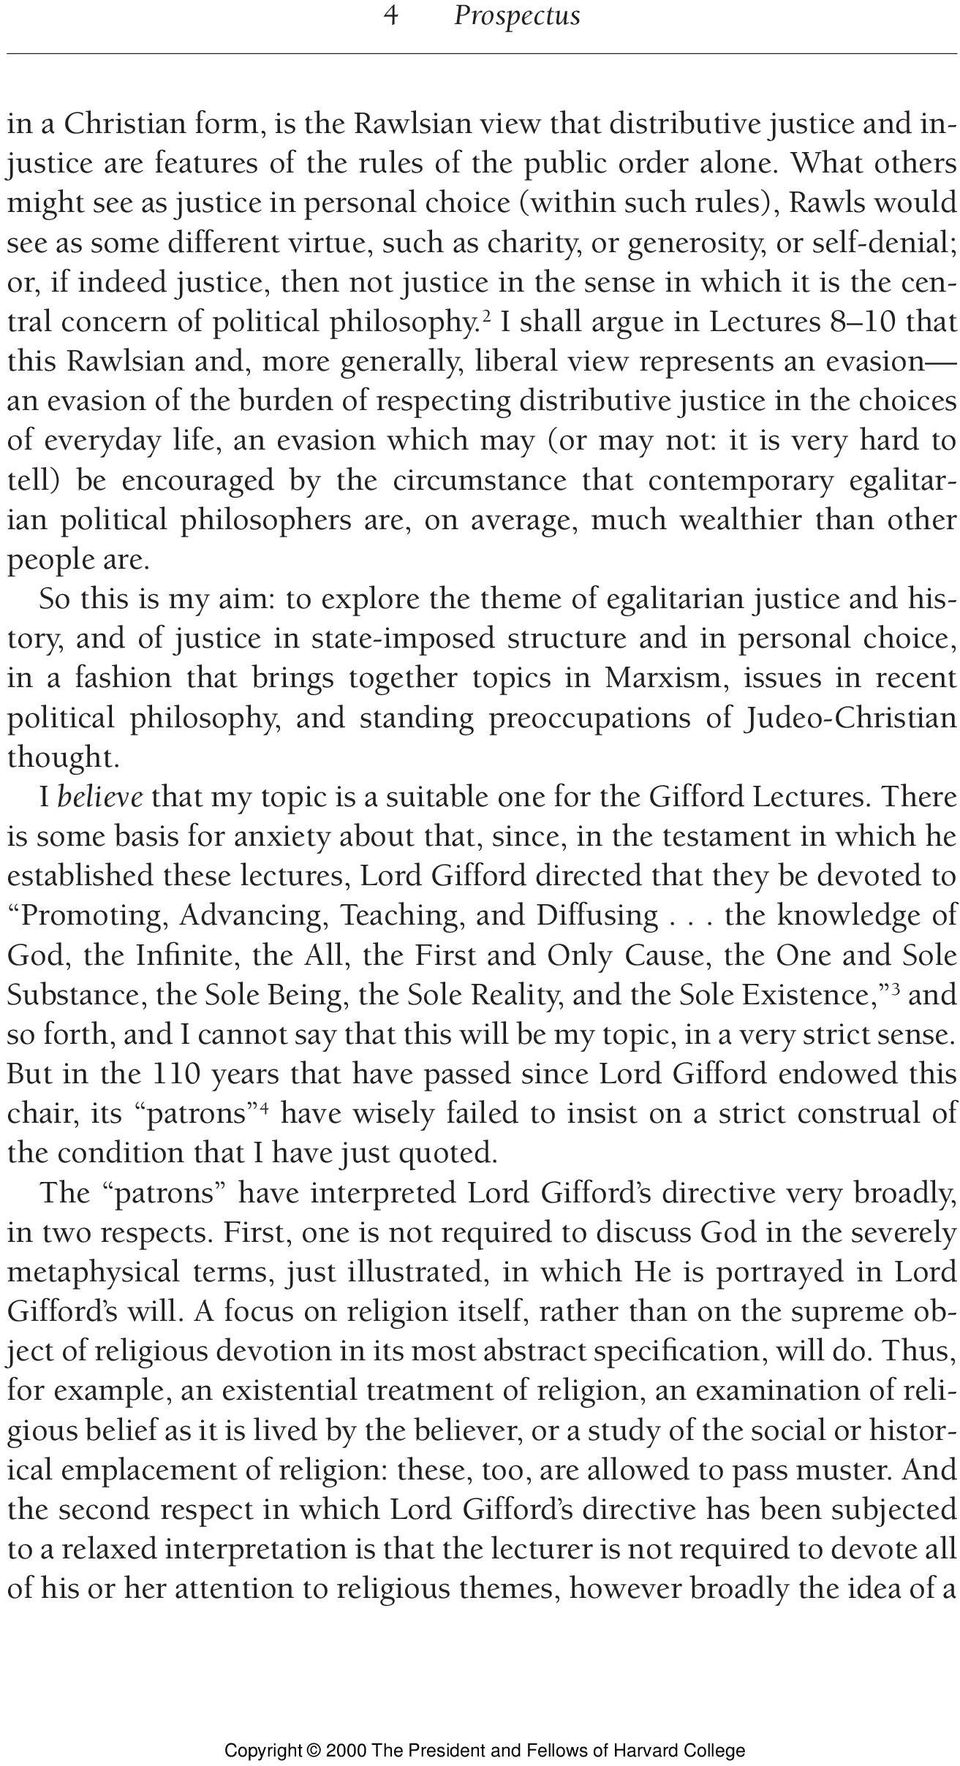 justice in the sense in which it is the central concern of political philosophy.